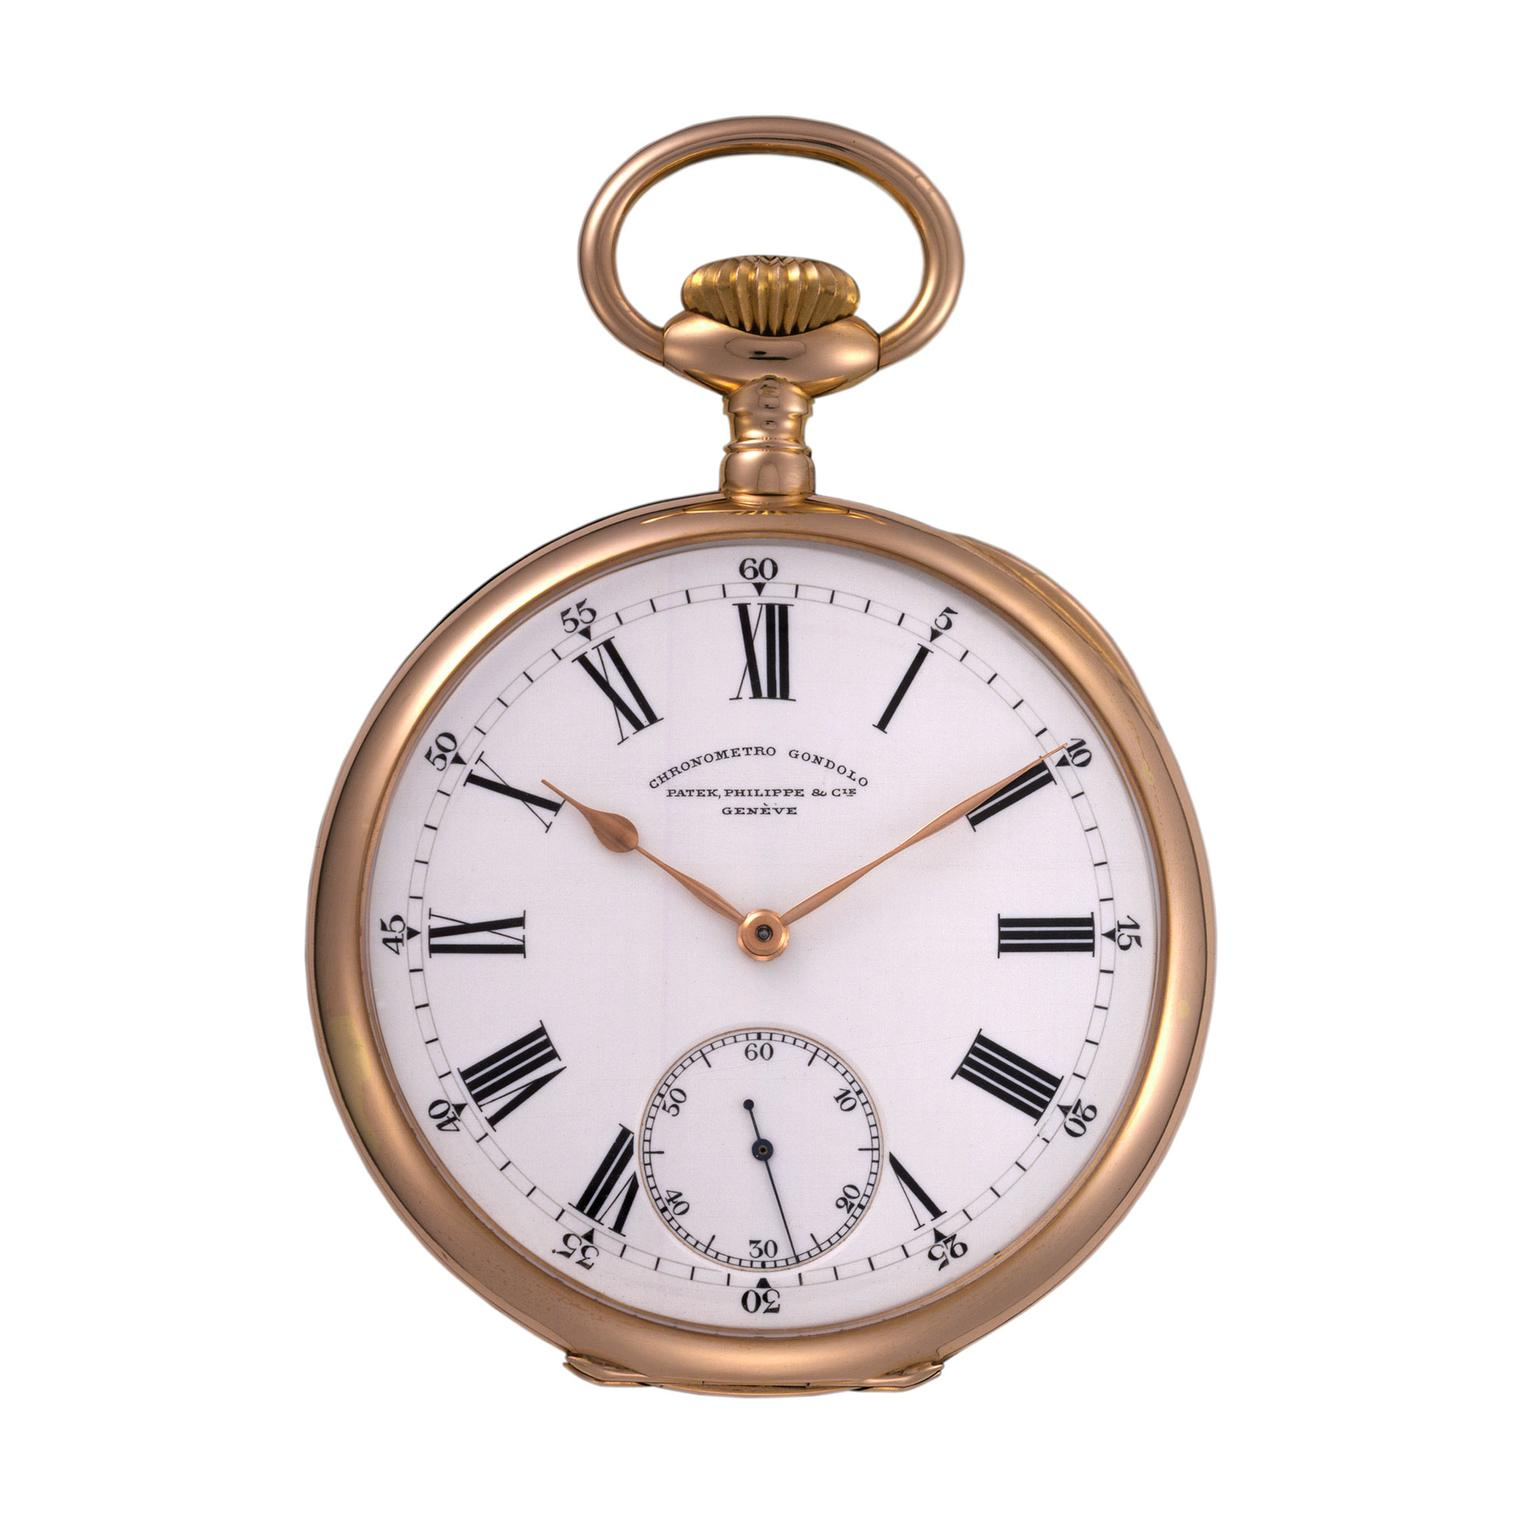 Patek Philippe Gondolo pocket watch 1904